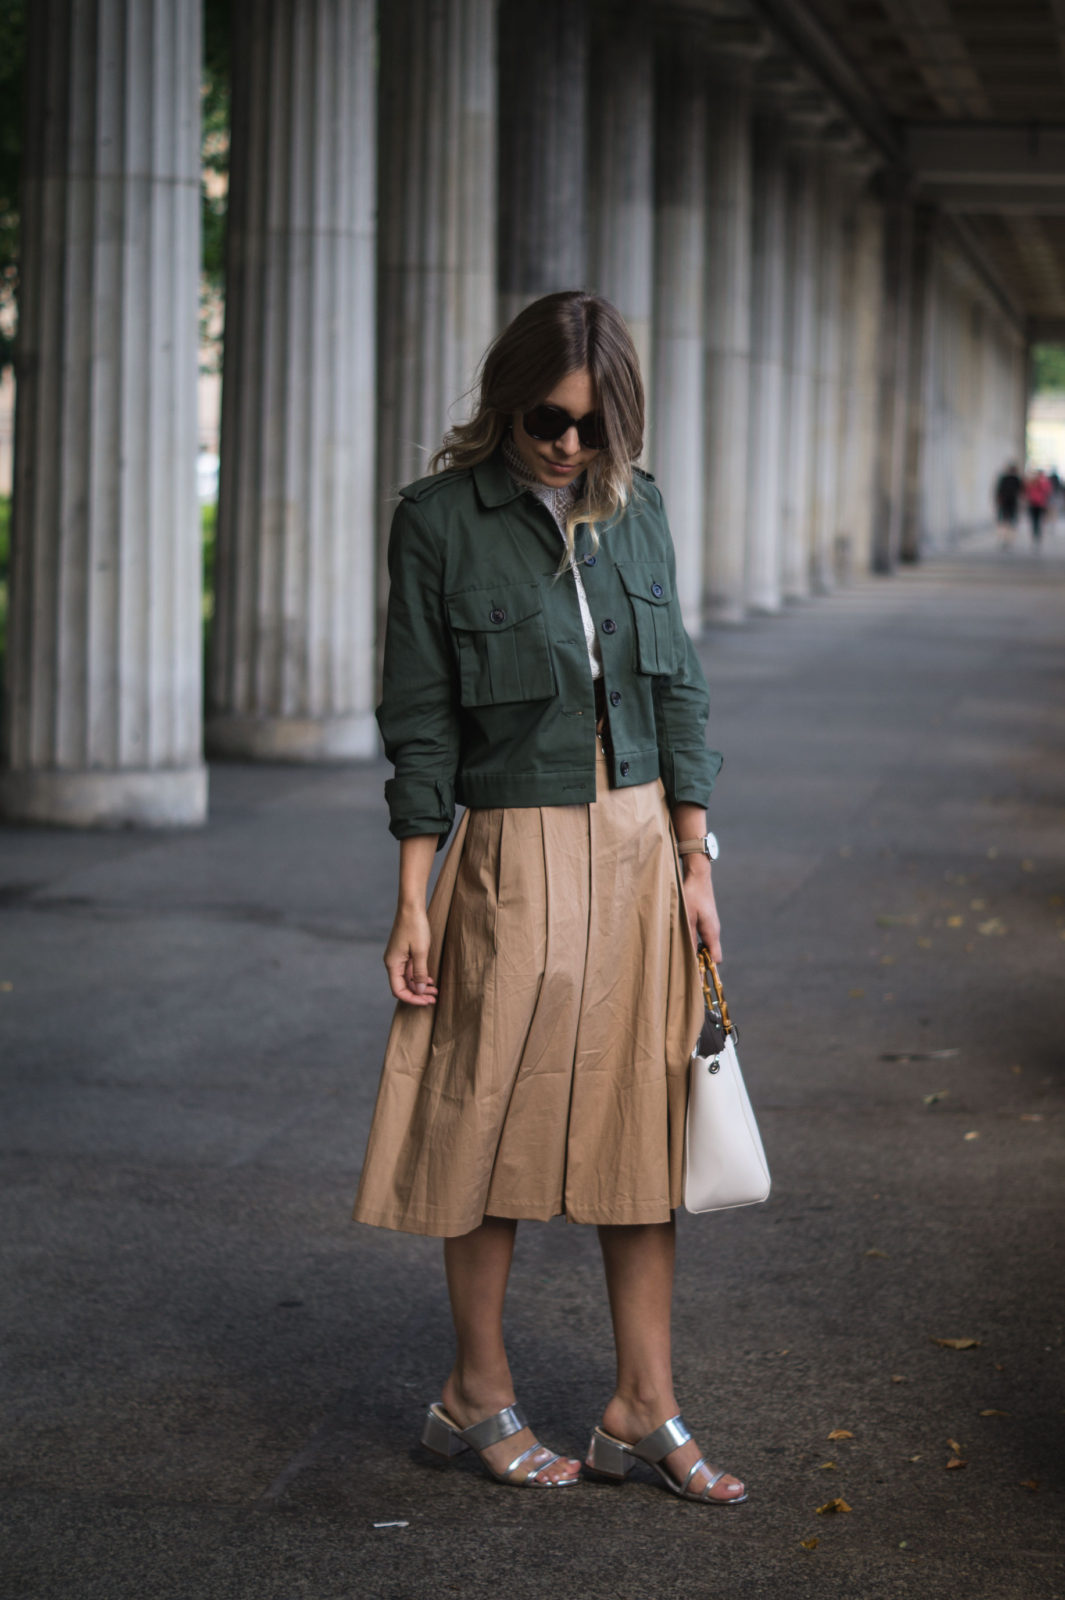 Fashion Week Berlin Streetstyle Sariety Midi Rock Skirt Museumsinsel MBFW Modeblogger Fashionblog Outfit-6